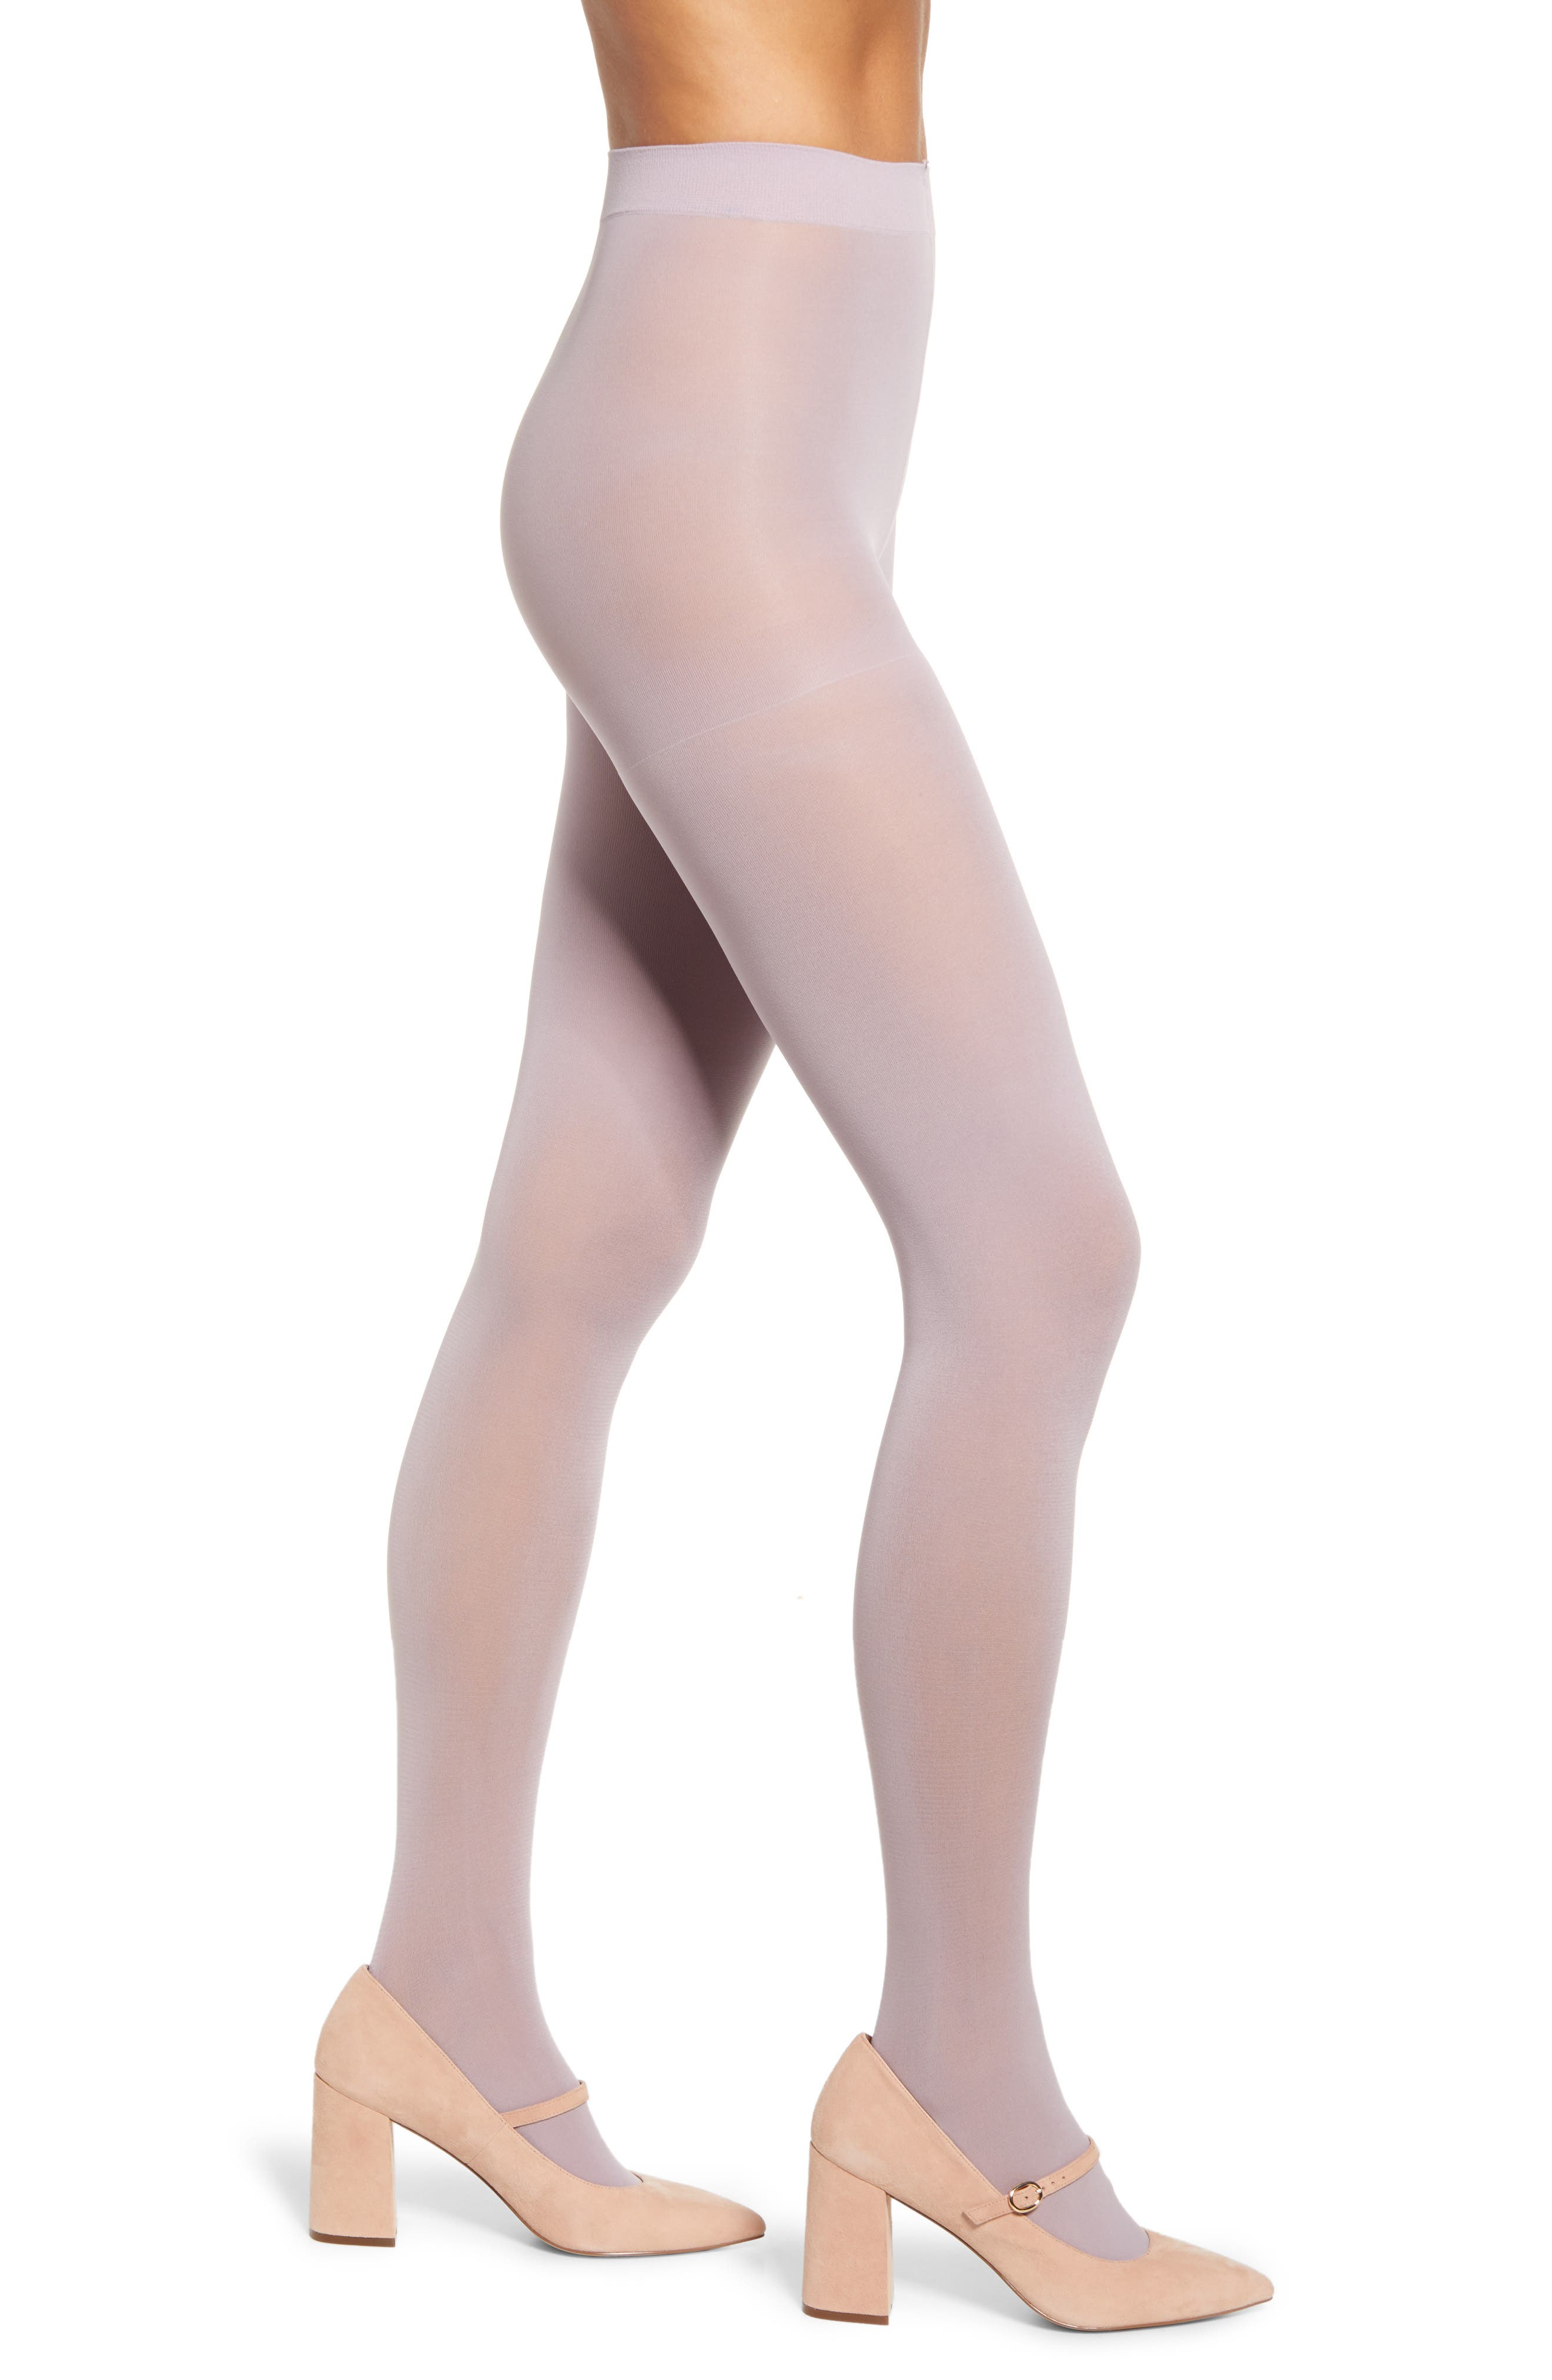 1960s Tights, Stockings, Panty Hose, Knee High Socks Womens Halogen X Atlantic-Pacific Opaque Tights Size Large - Purple Regular  Plus Size Nordstrom Exclusive $19.00 AT vintagedancer.com